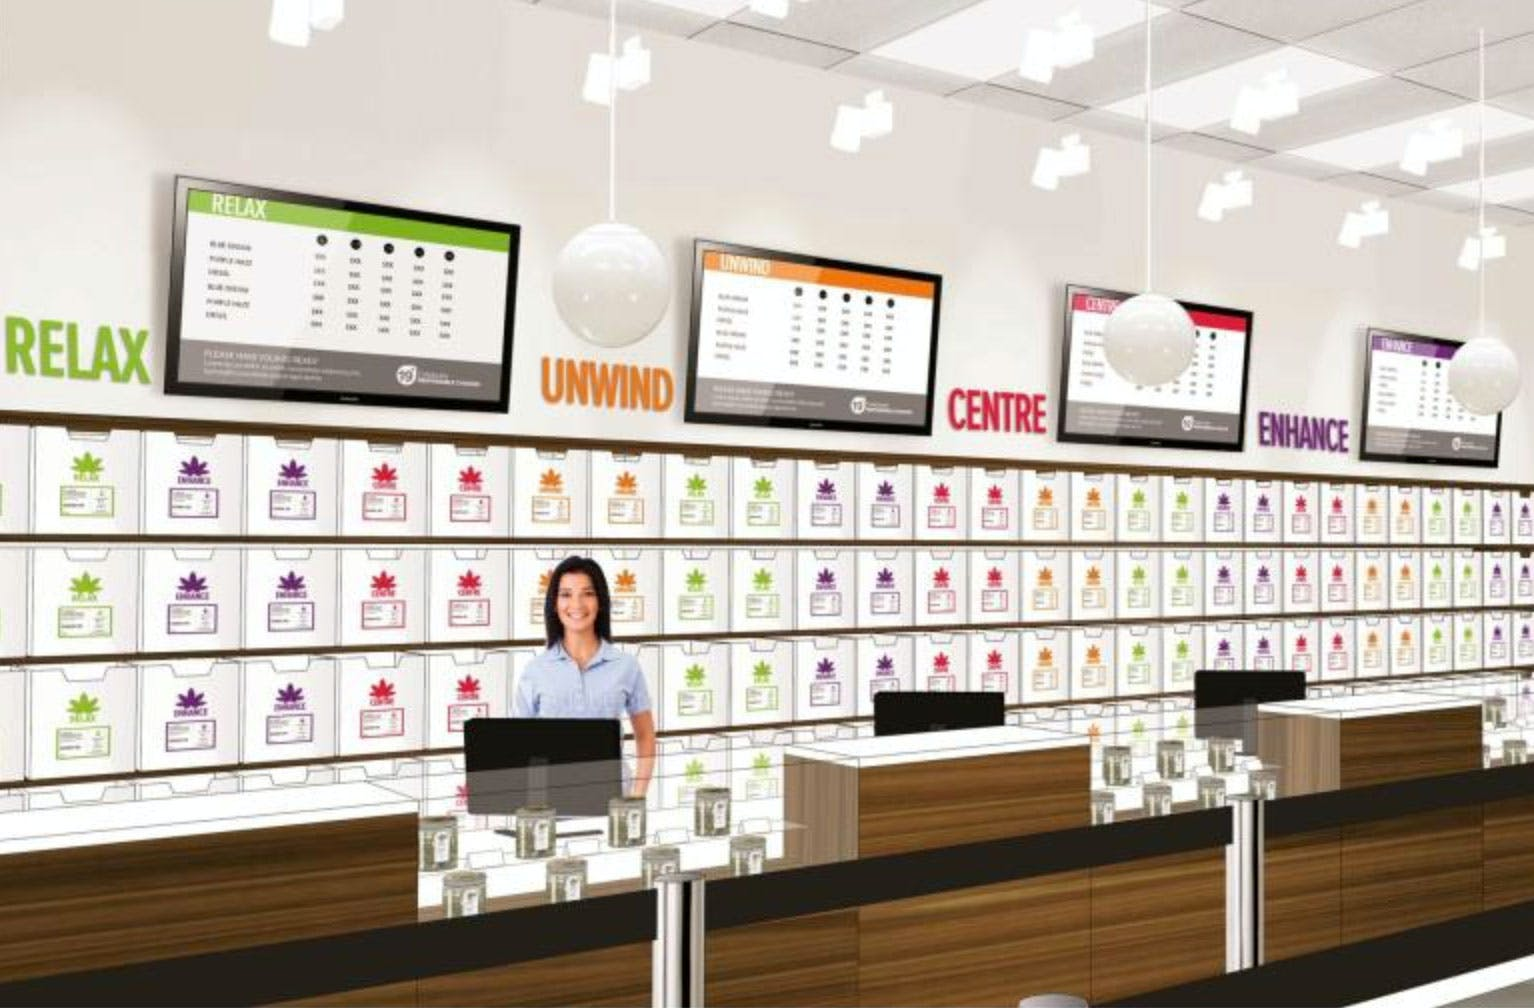 Nova Scotia Unveils The Worlds First Liquor and Cannabis Retail Store2 Cannabis is Legal in Vermont, But Gifting it Isnt